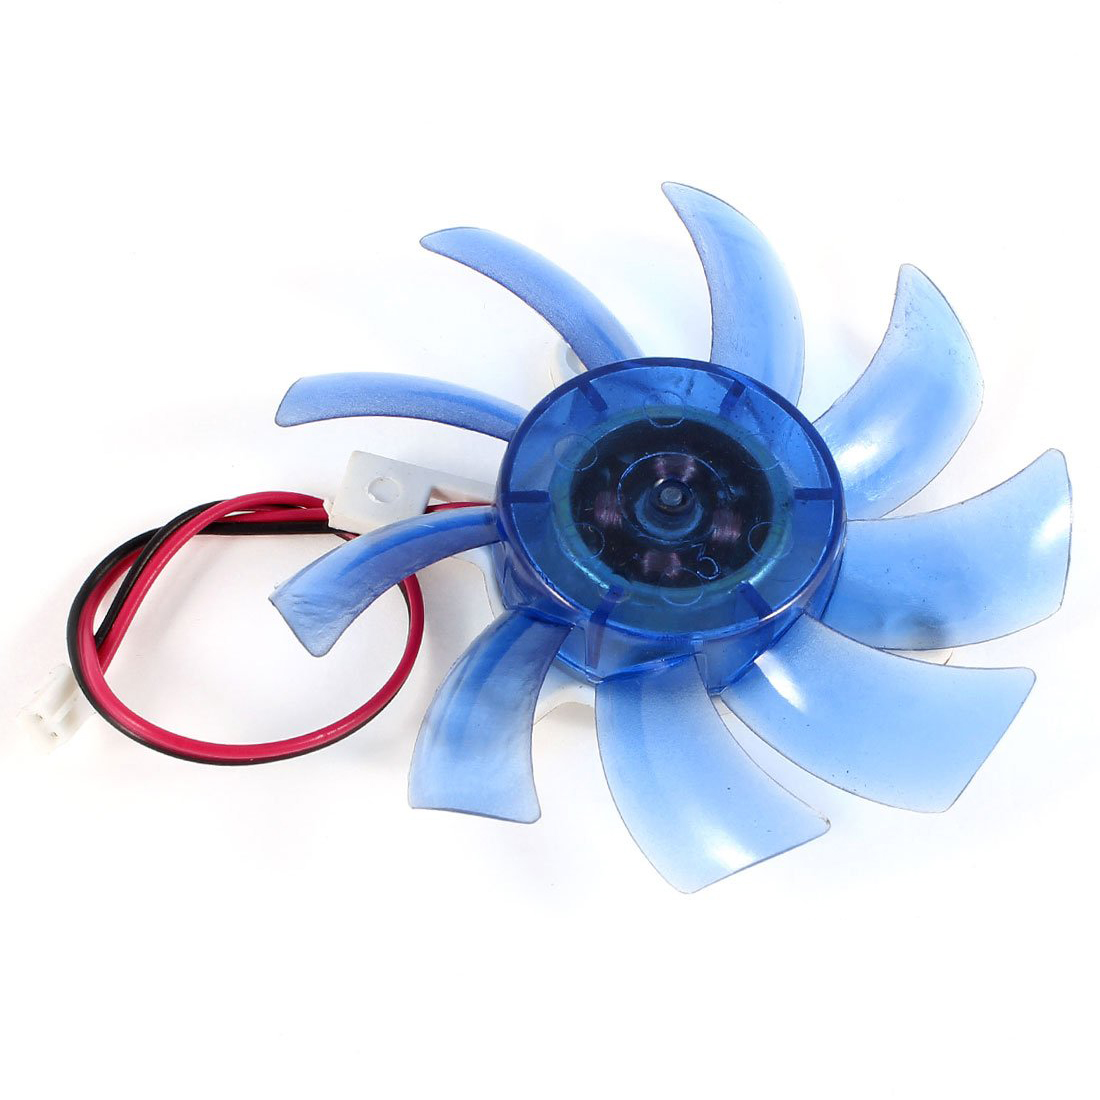 75mm 12VDC Blue Plastic VGA Video Card Cooling Fan Cooler for Computer computer video card cooling fan gpu vga cooler as replacement for asus r9 fury 4g 4096 strix graphics card cooling